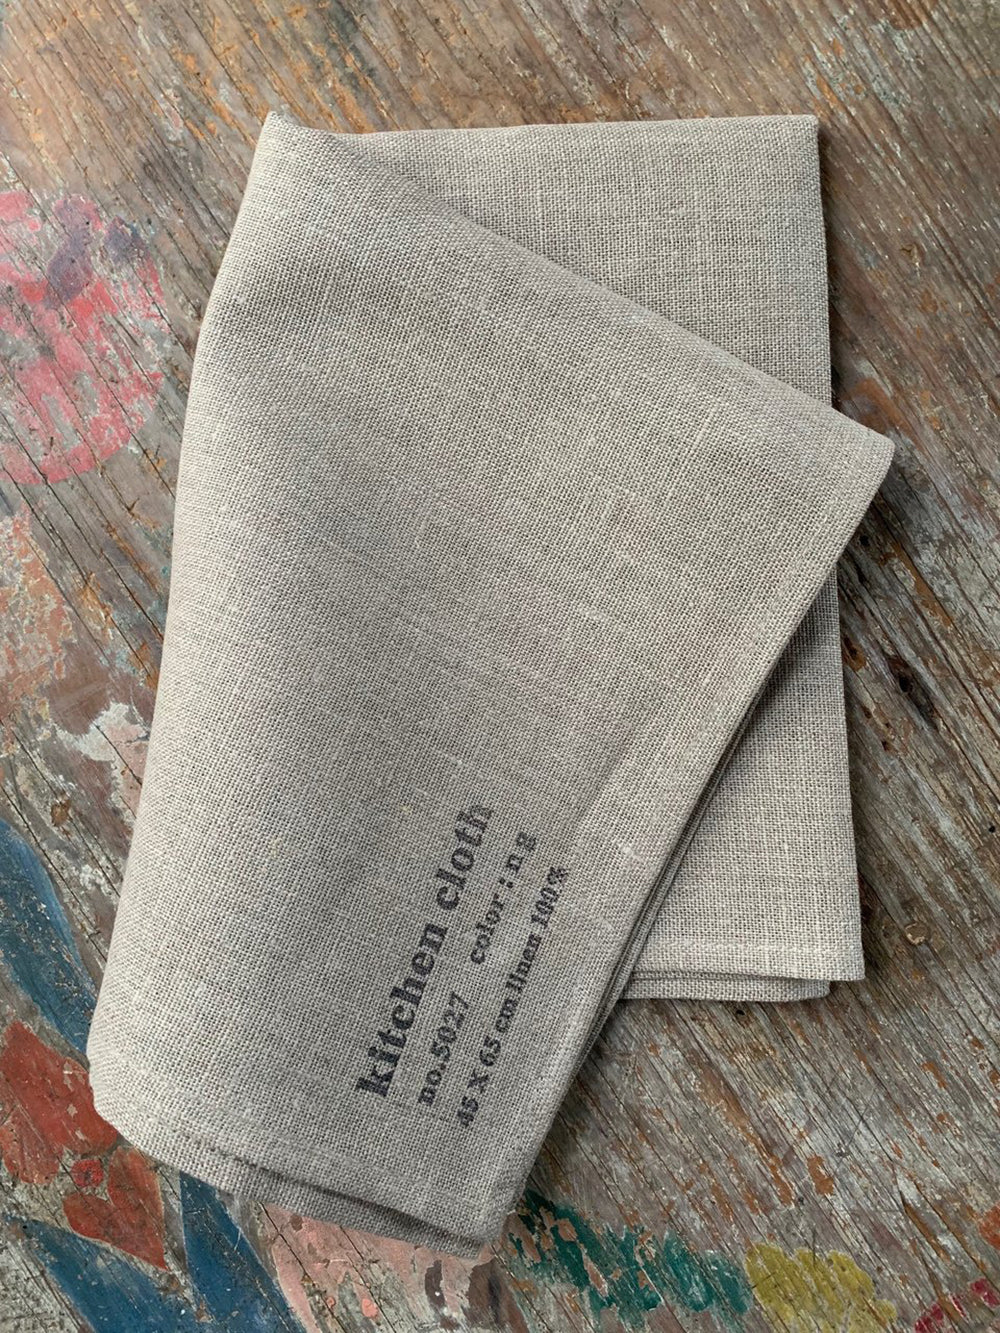 fog linen kitchen cloth in natural